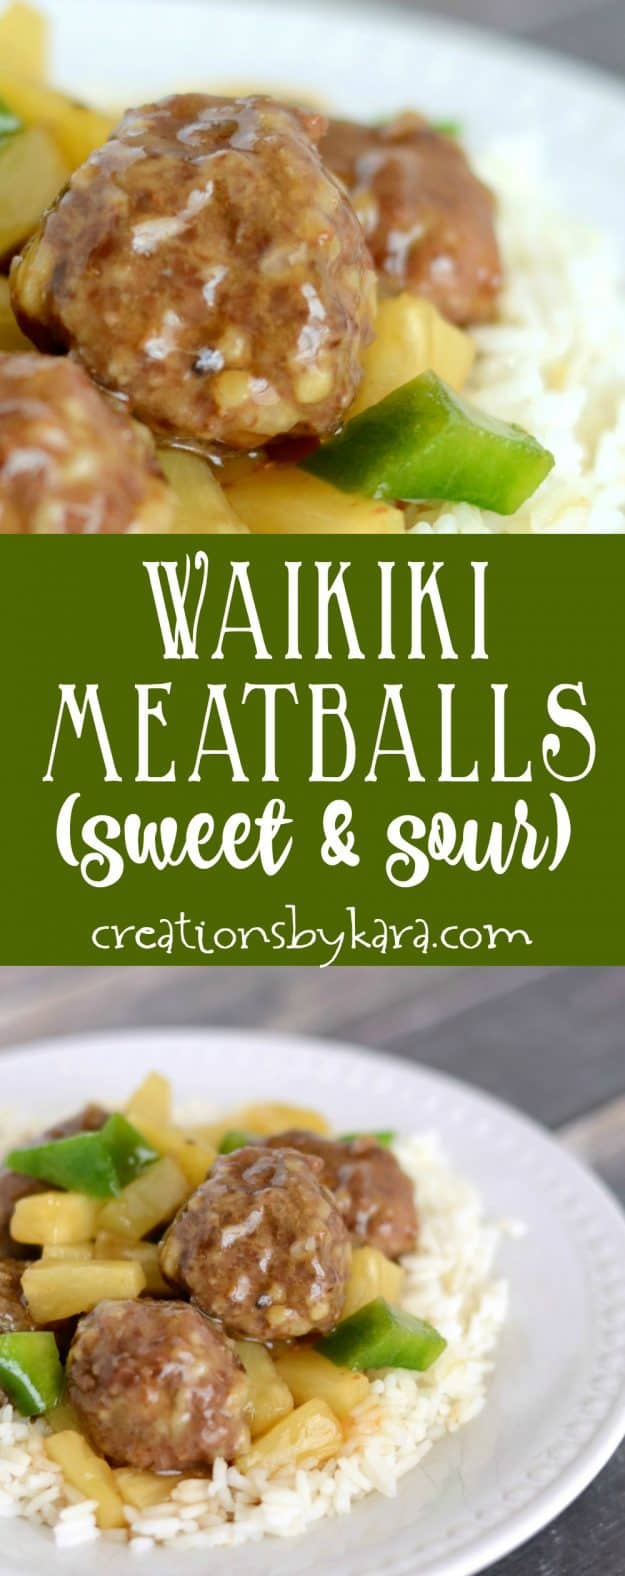 Quick and easy Sweet and Sour Meatballs are a perfect family friendly recipe. You can make them ahead and freeze them.